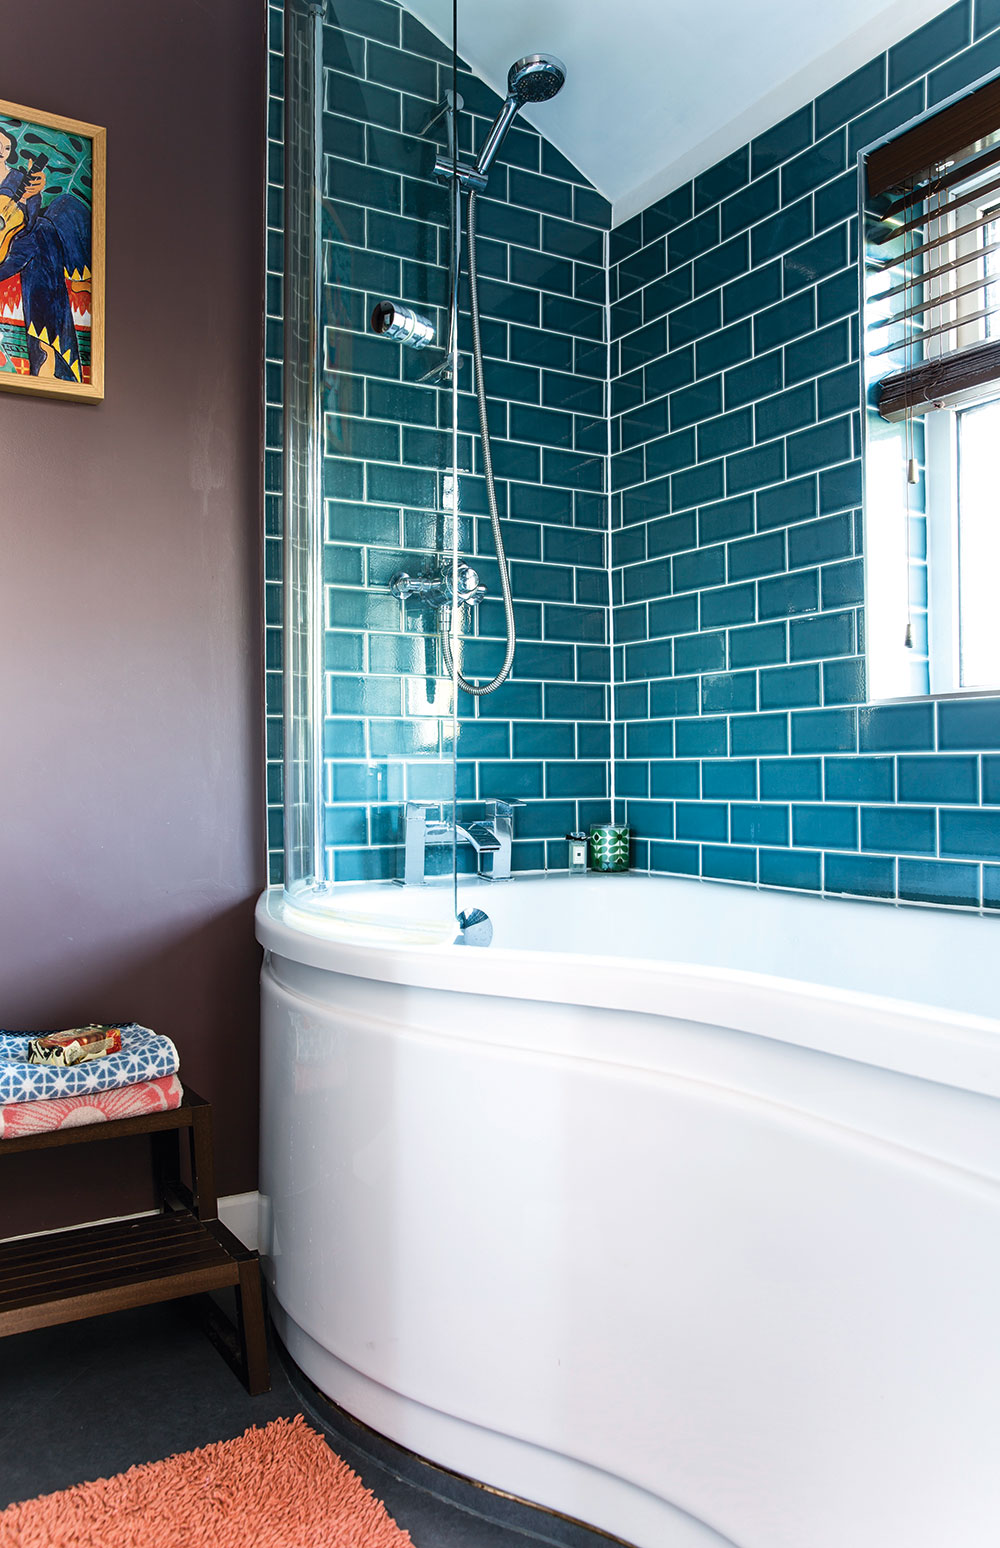 Our Bathroom, Lizzie Orme for Your Home